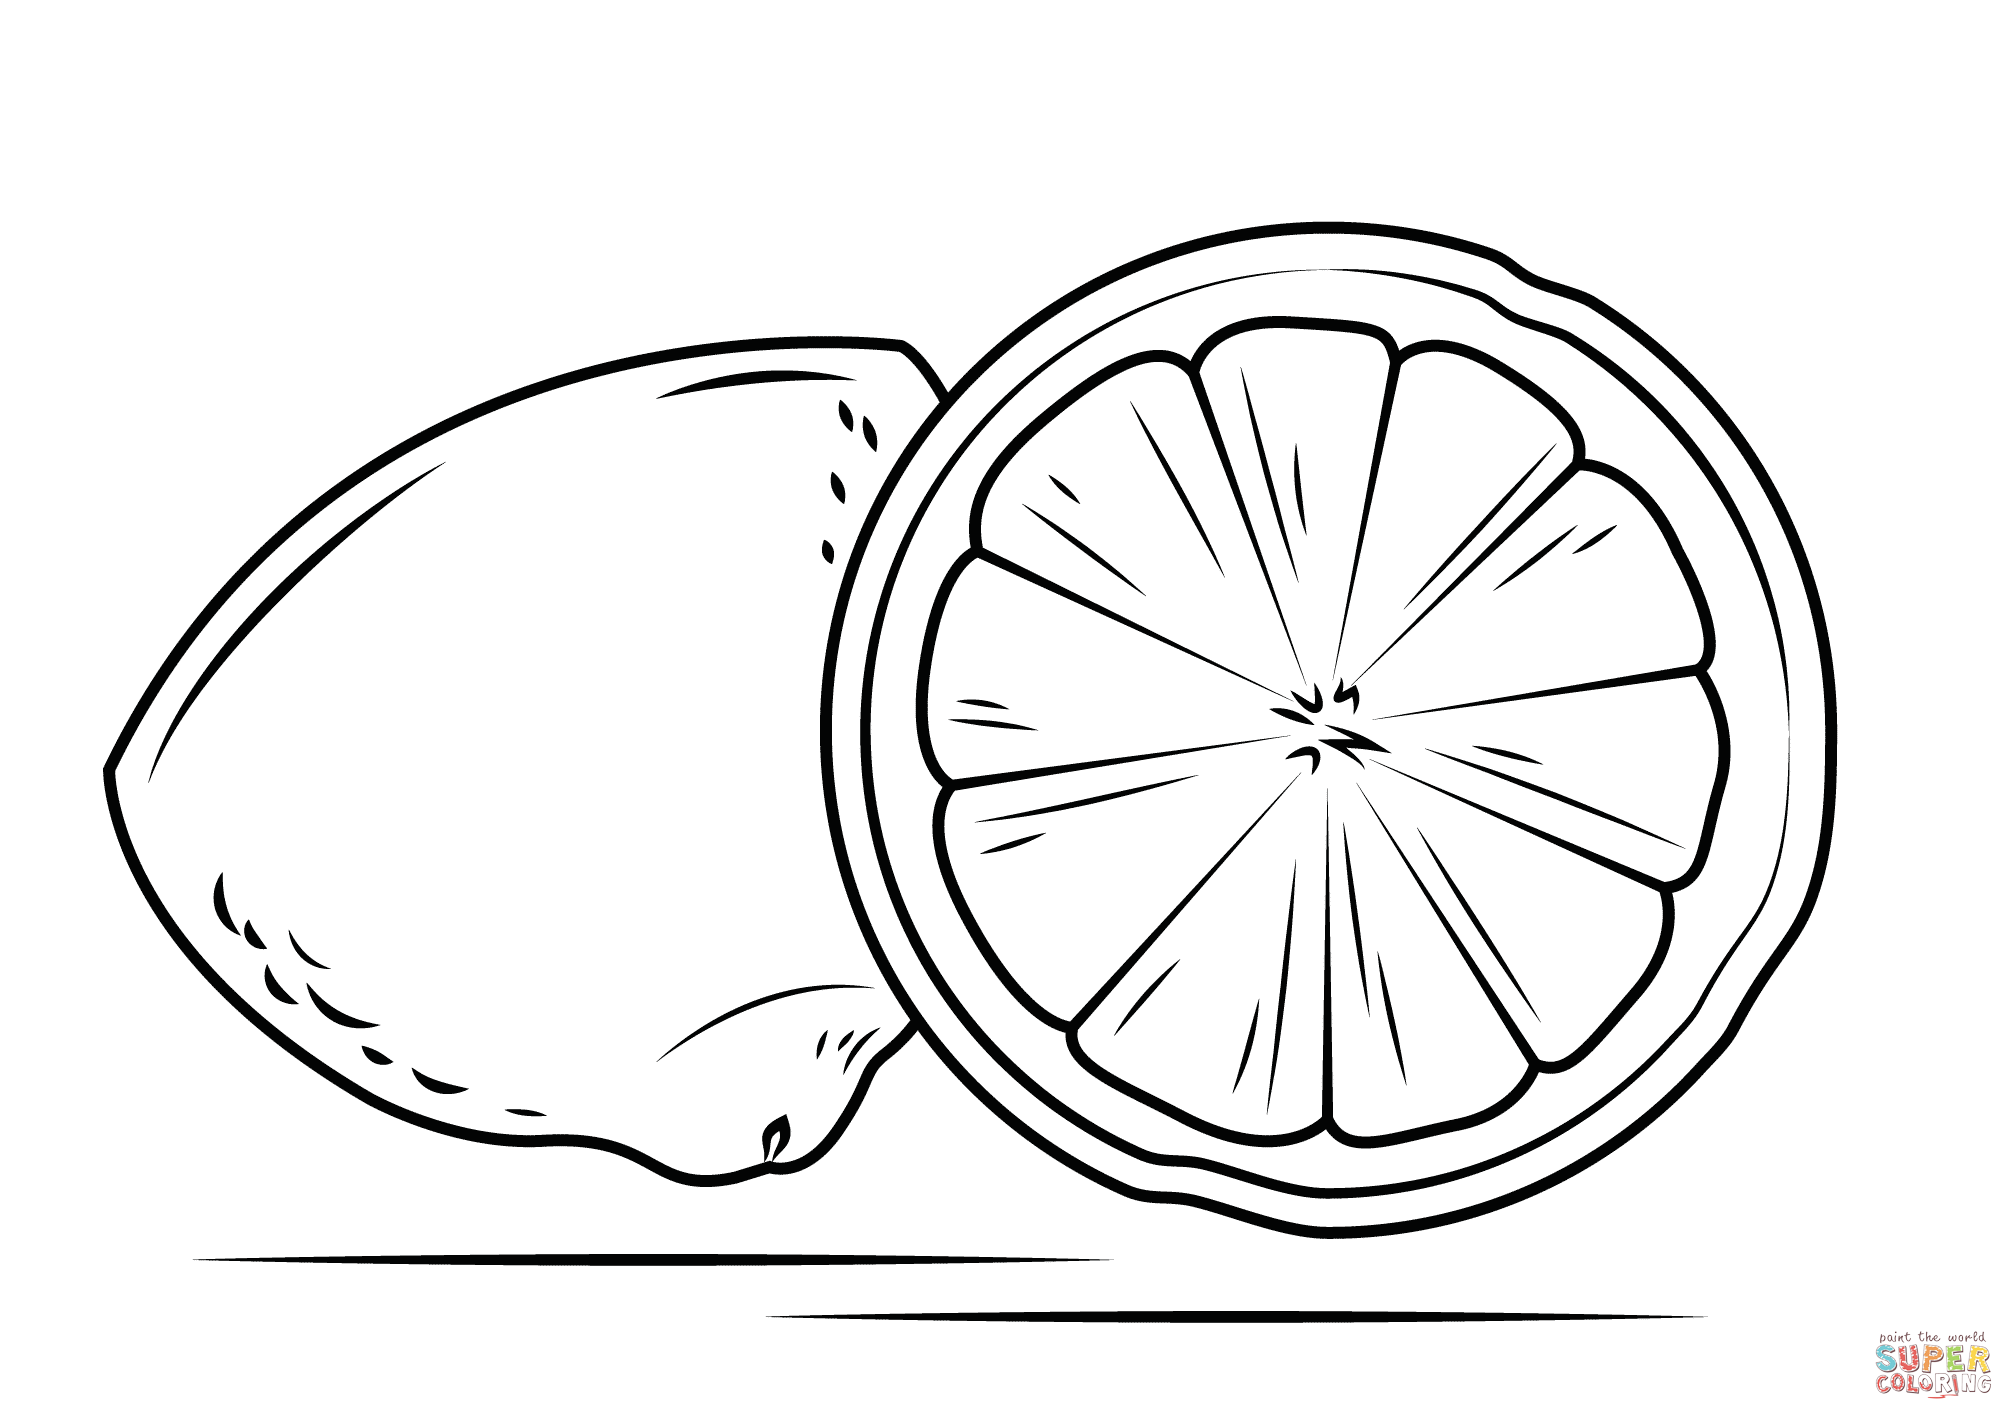 Lemon Cross Section Coloring Page